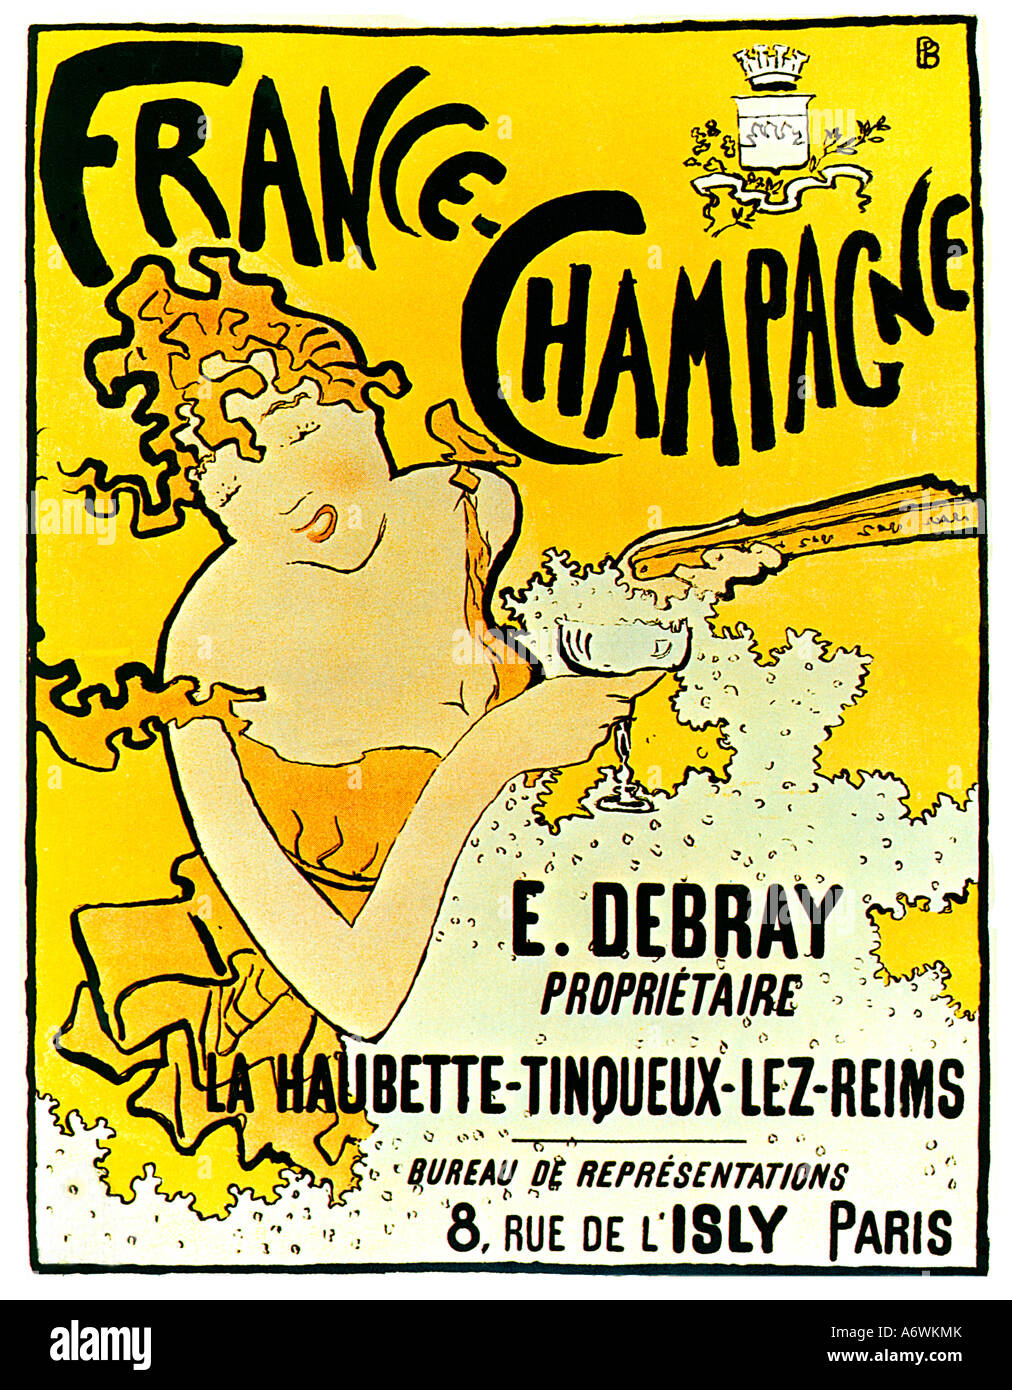 France Champagne famous Art Nouveau poster by Pierre Bonnard for Debray his first commercial success as an artist - Stock Image